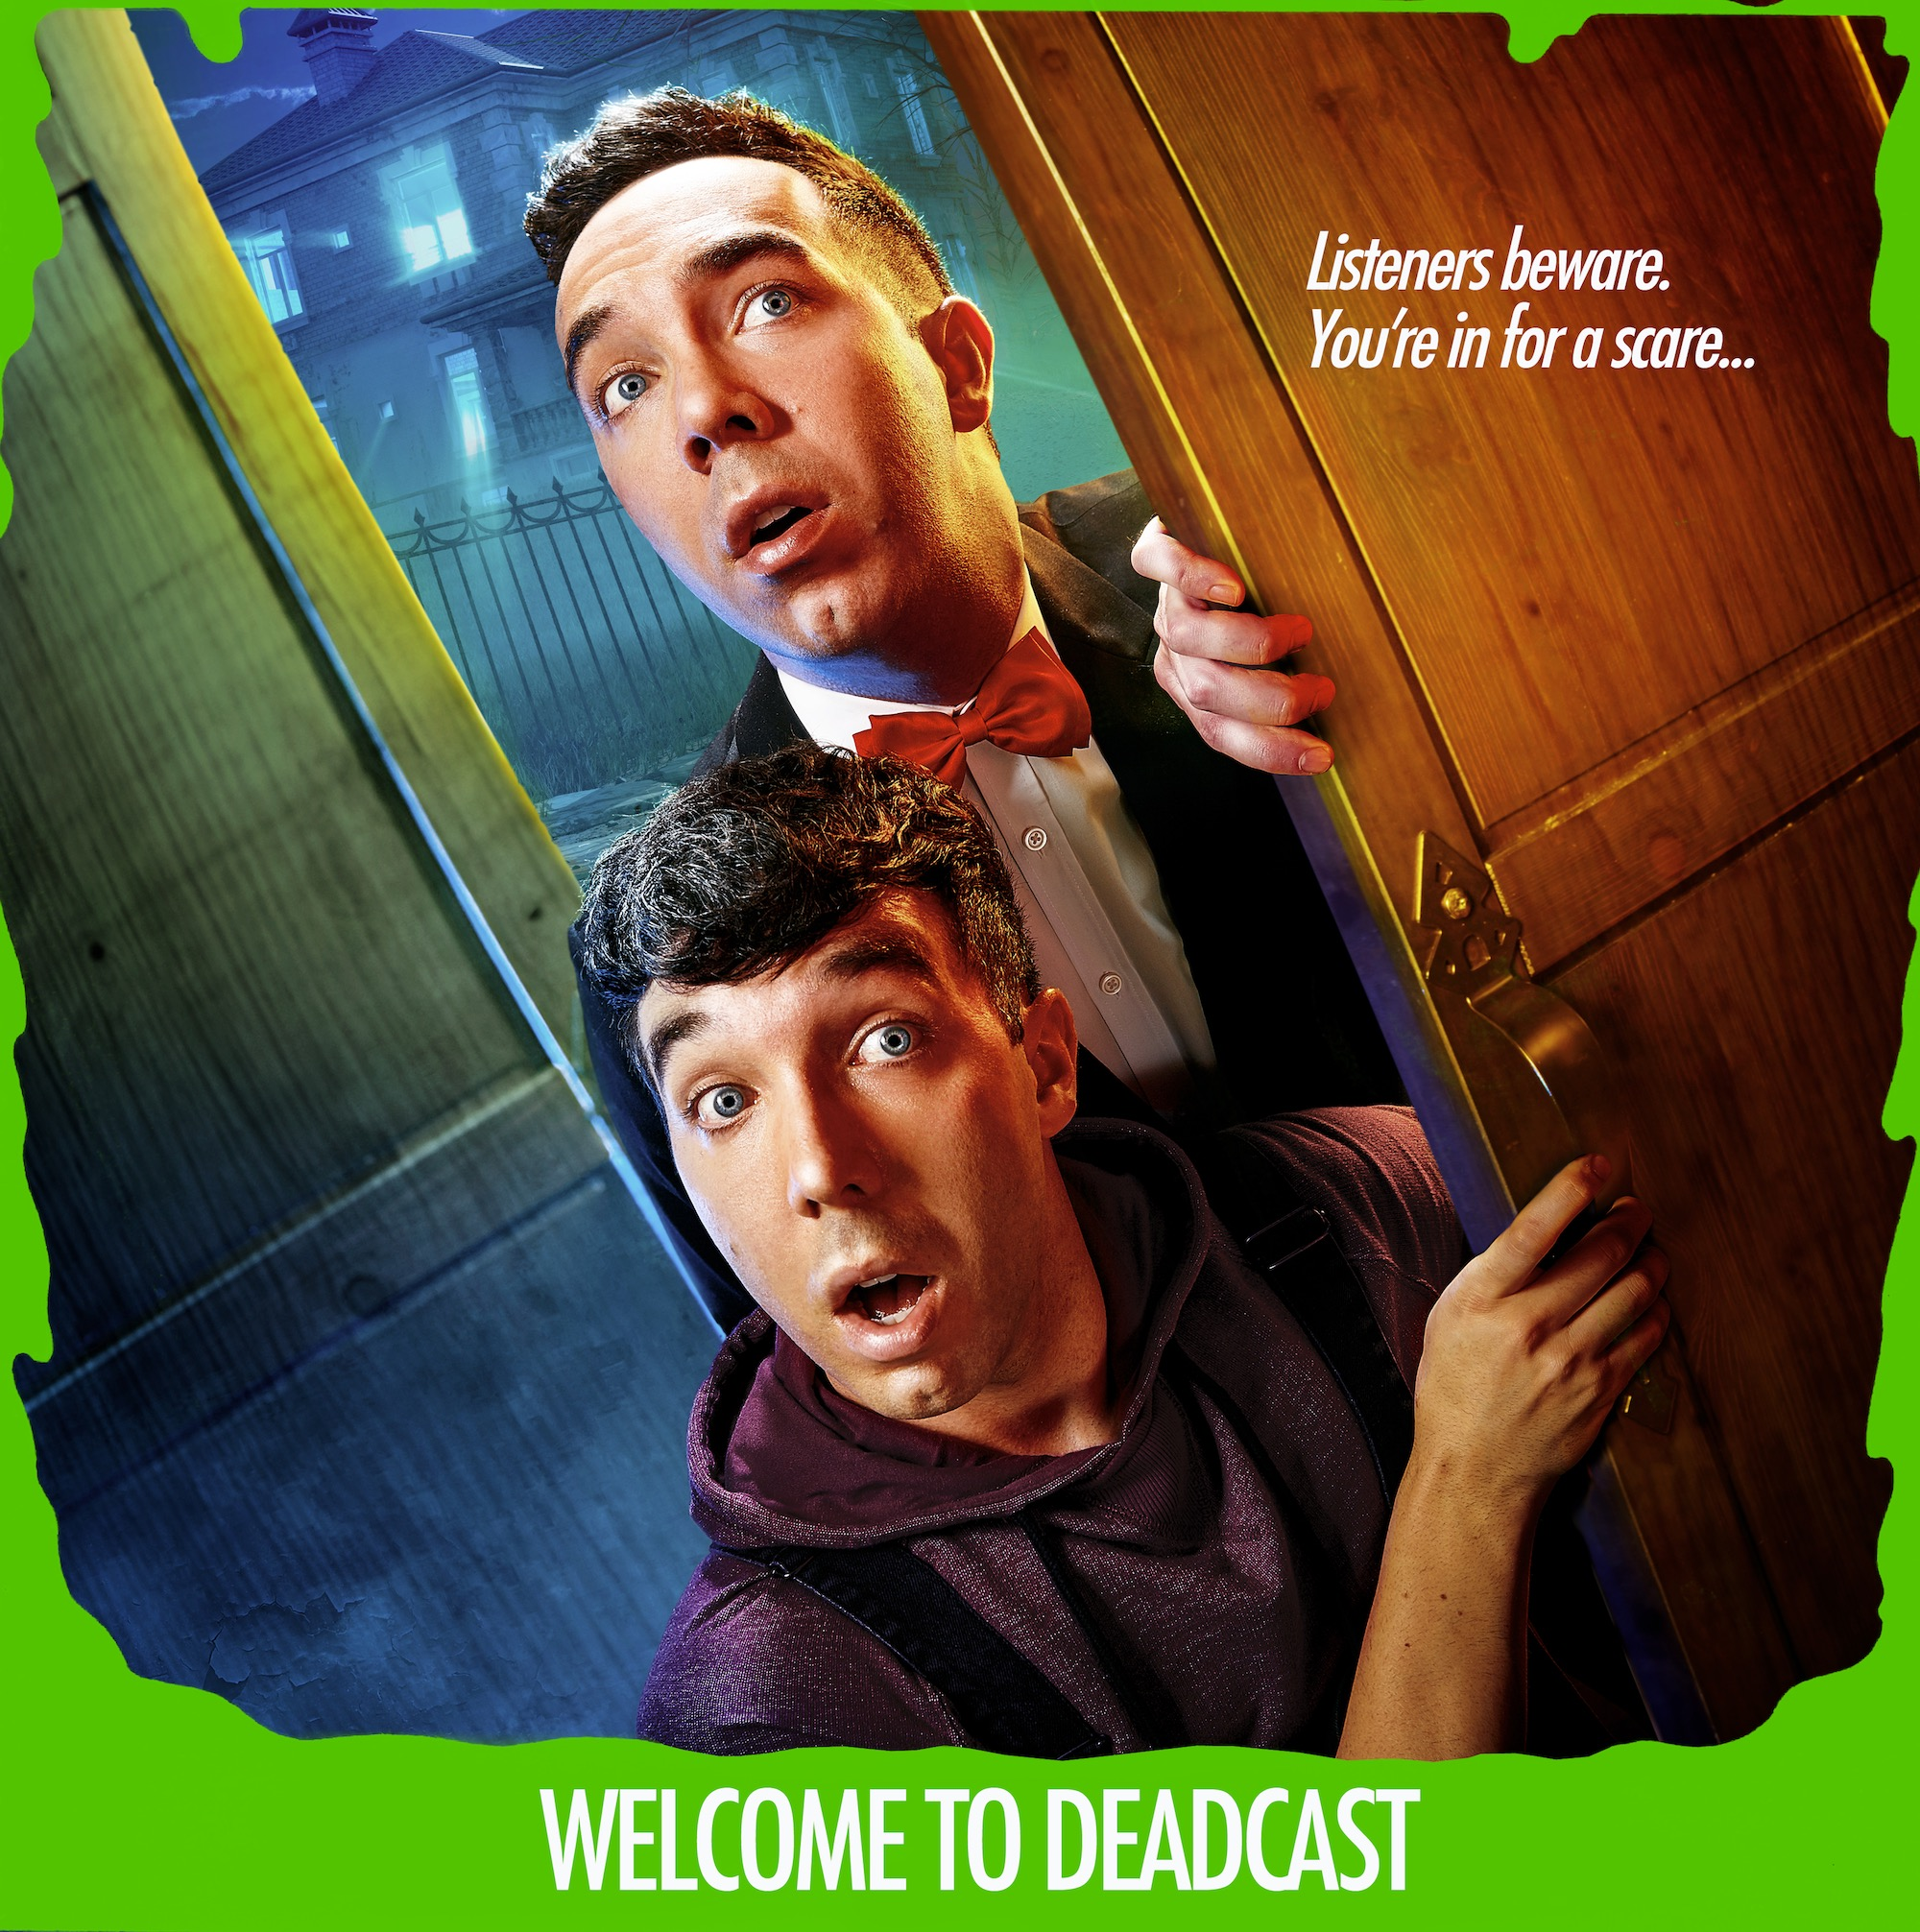 Goosebumps: Welcome to DeadCast